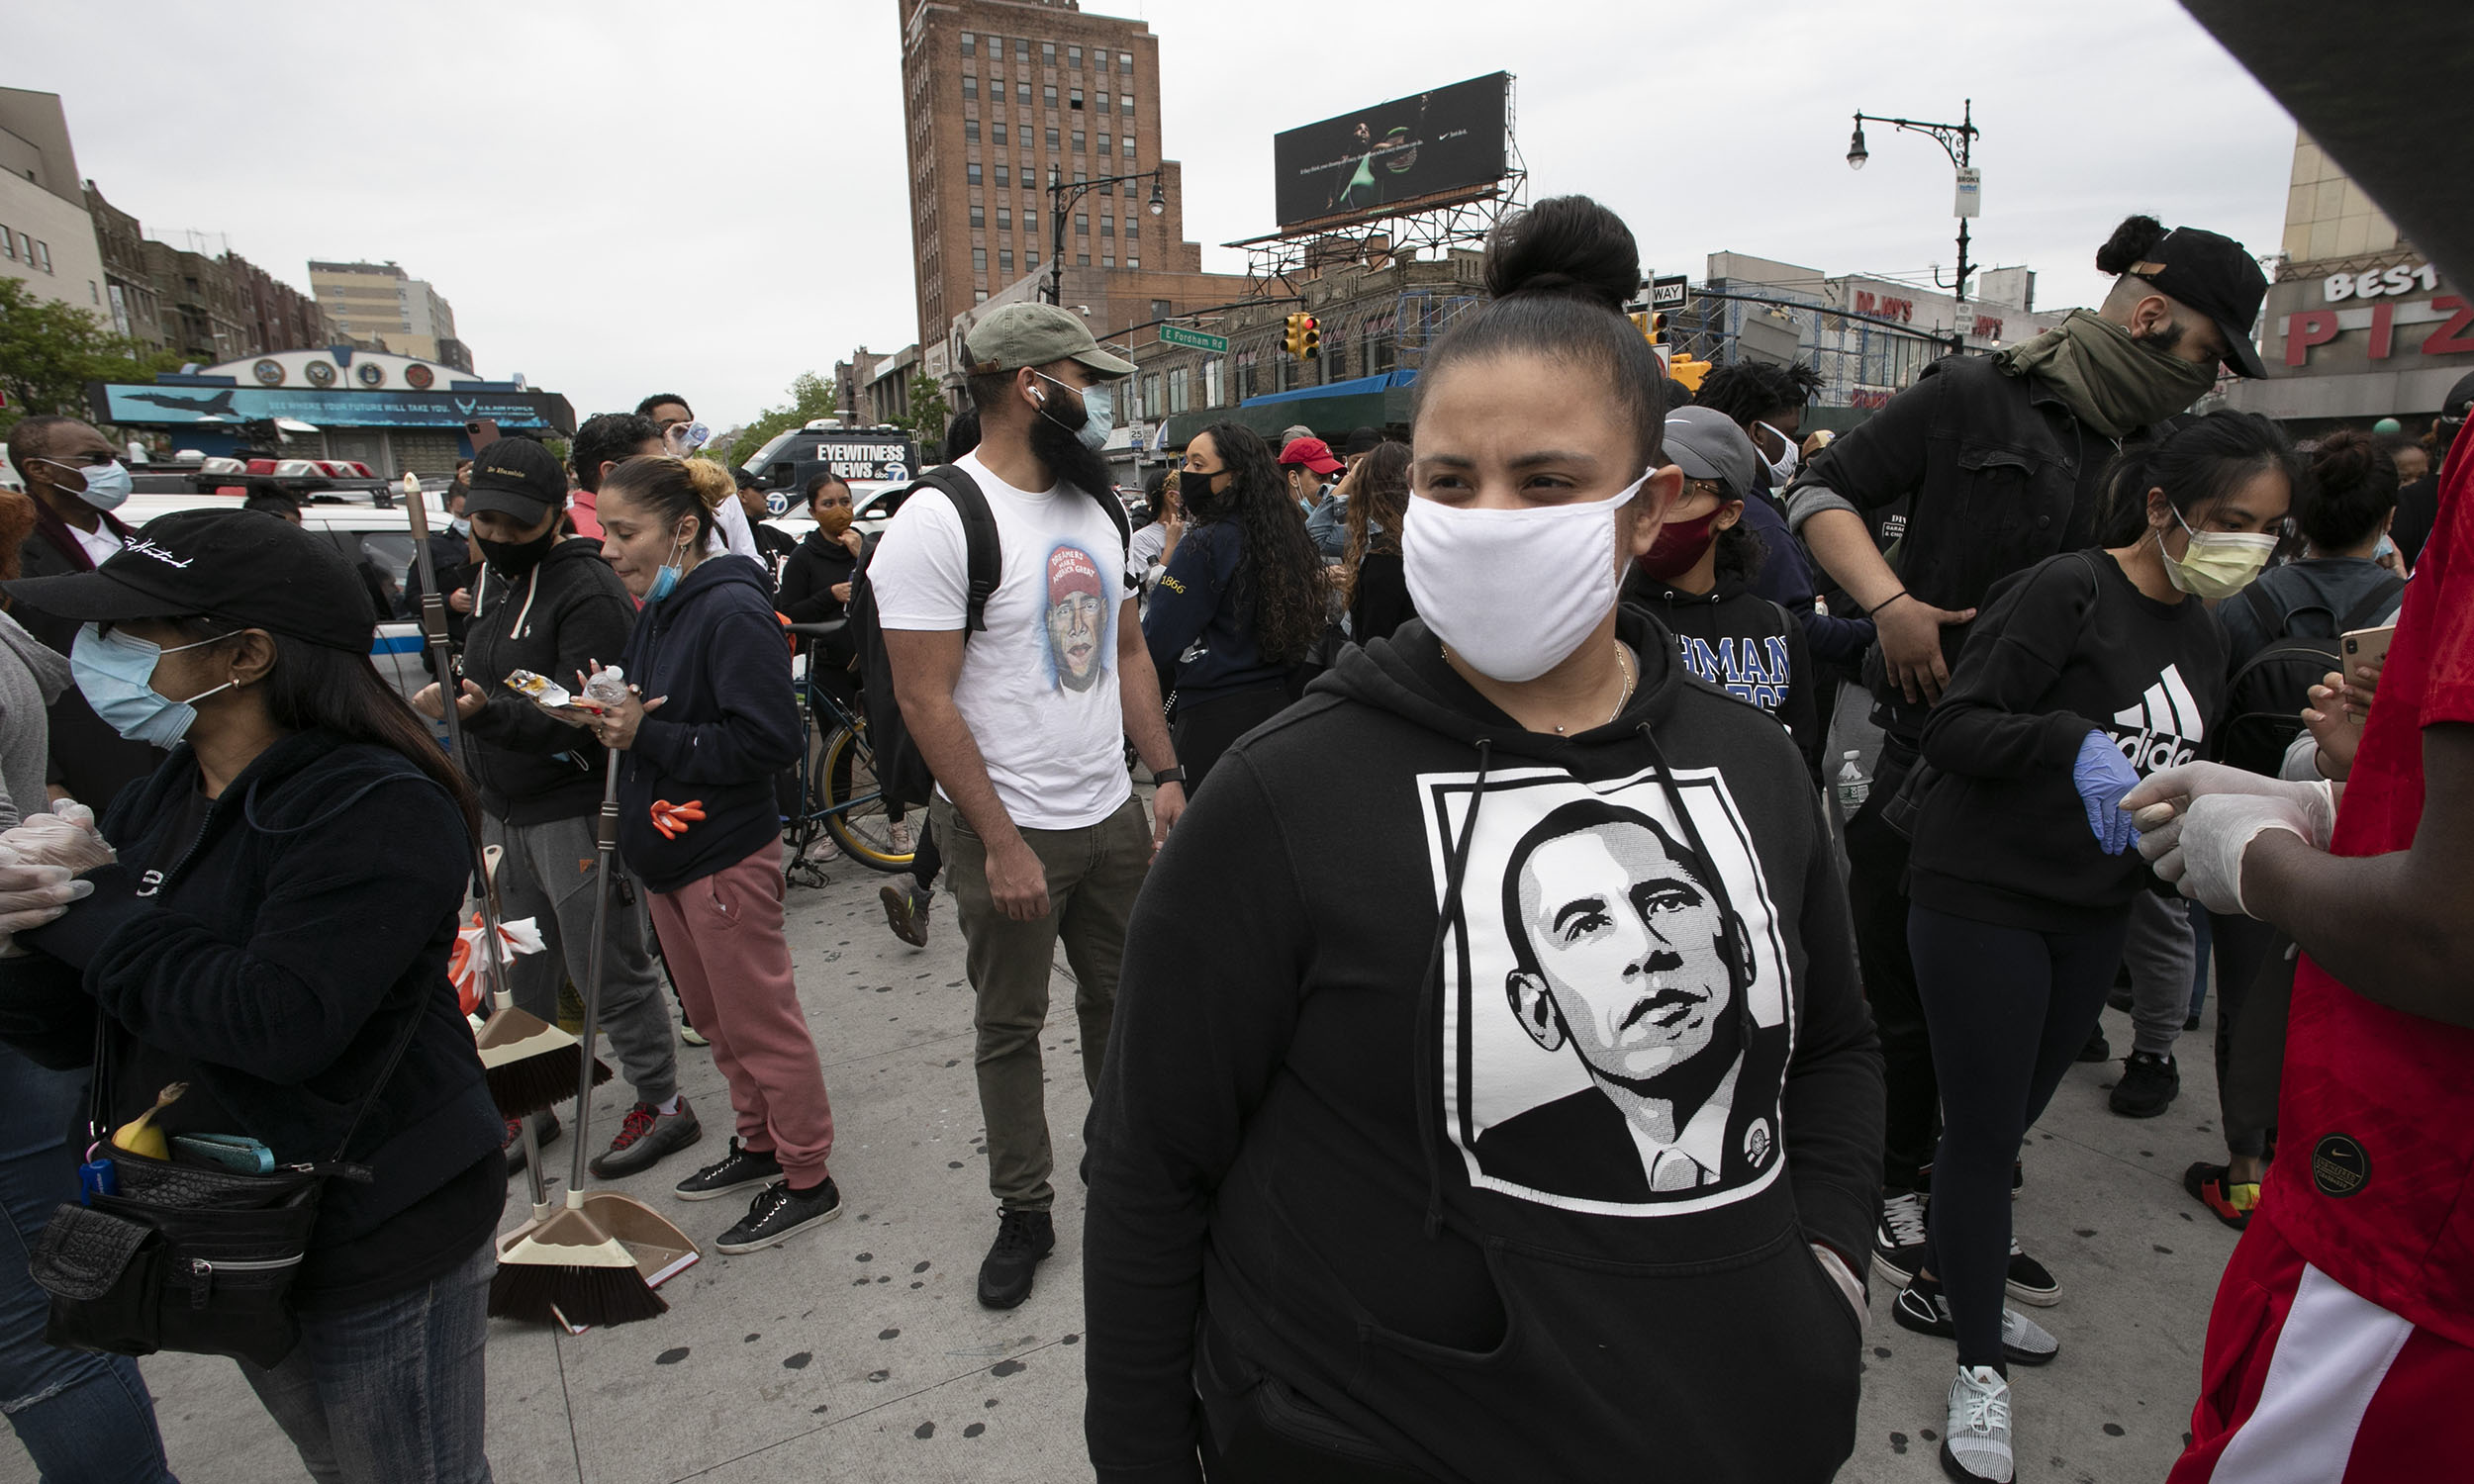 Sidnoma Ouango wears a President Barack Obama sweat shirt during a community effort to help store owners clean up in Bronx, New York, on Tuesday, June 2.